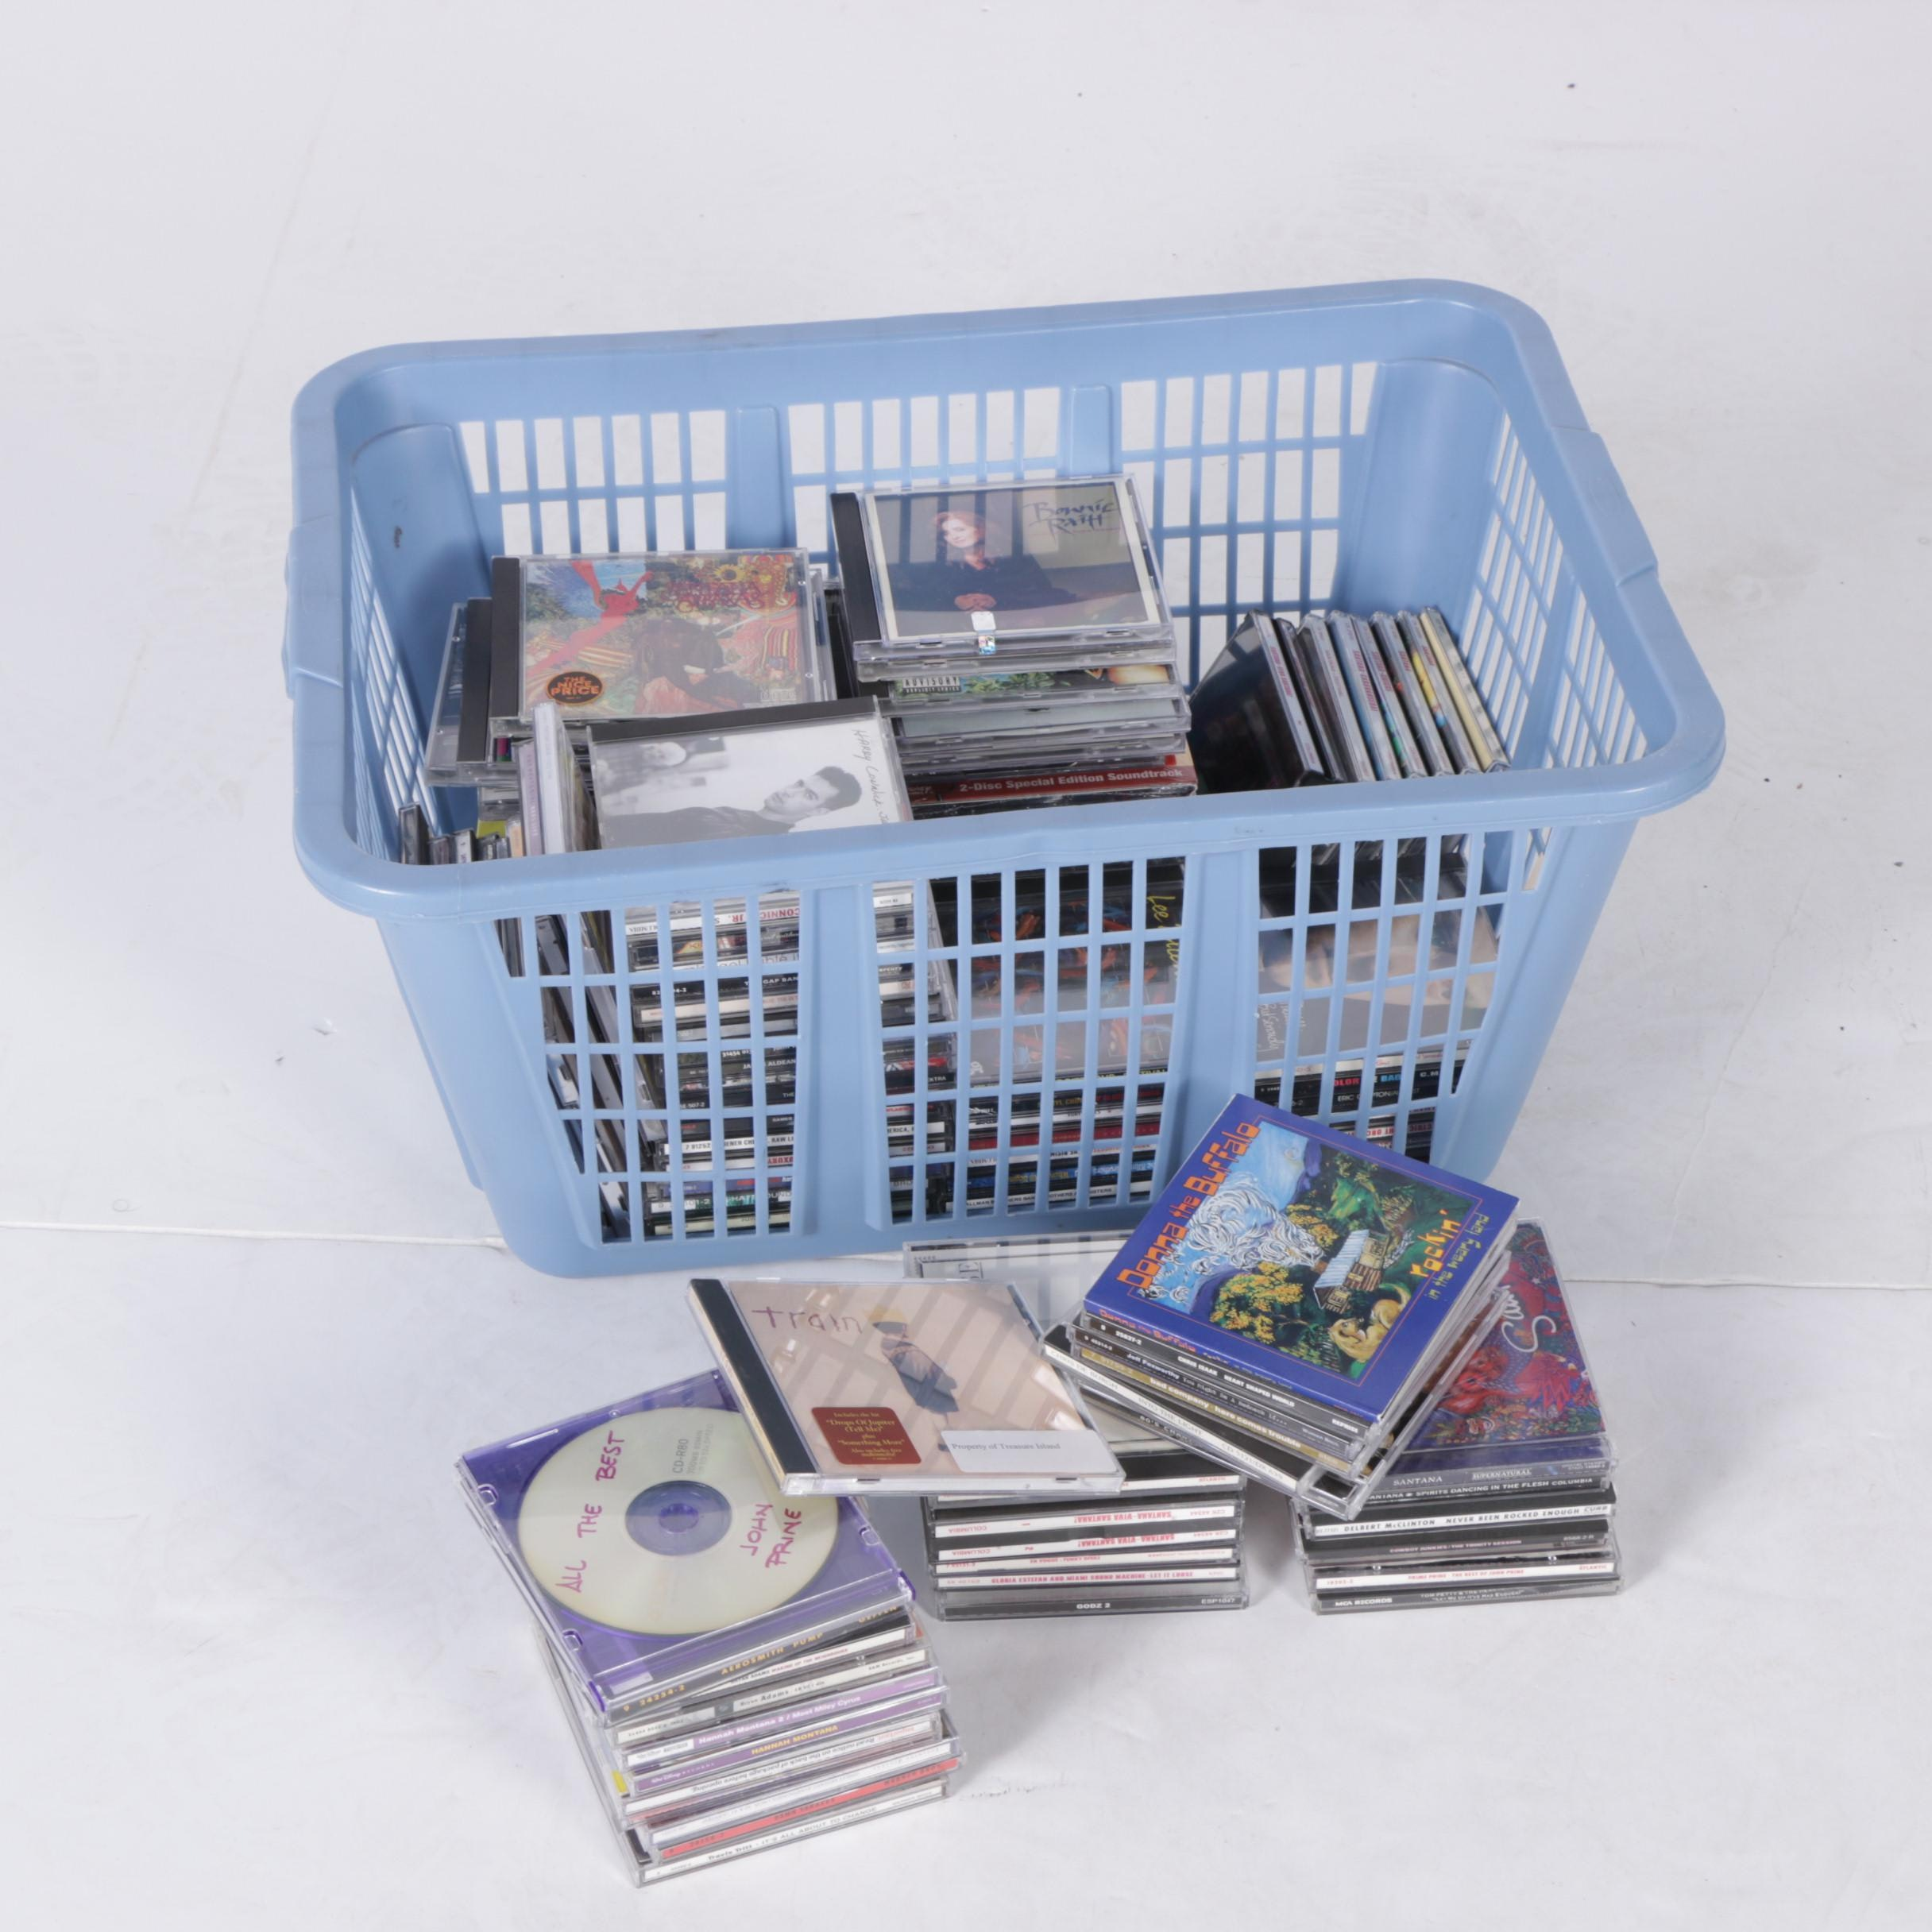 AC/DC, Green Day, Santana, Aerosmith and Other CDs